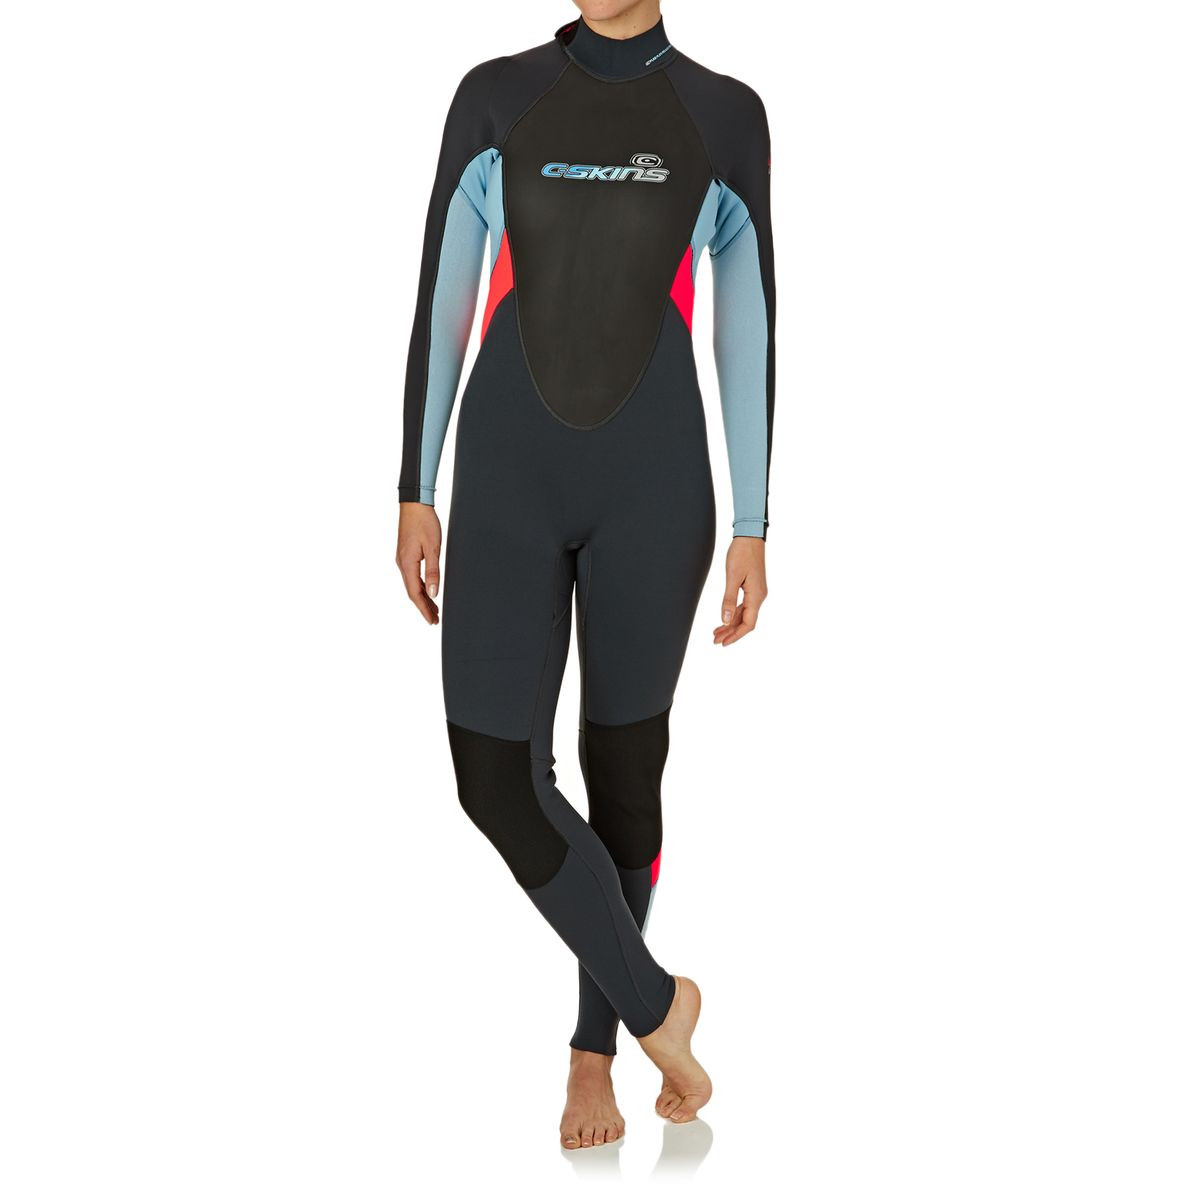 C-Skins Womens Element 3/2mm 2017 Back Zip Flatlock Wetsuit - Graphite/ Coral / Cold Blue